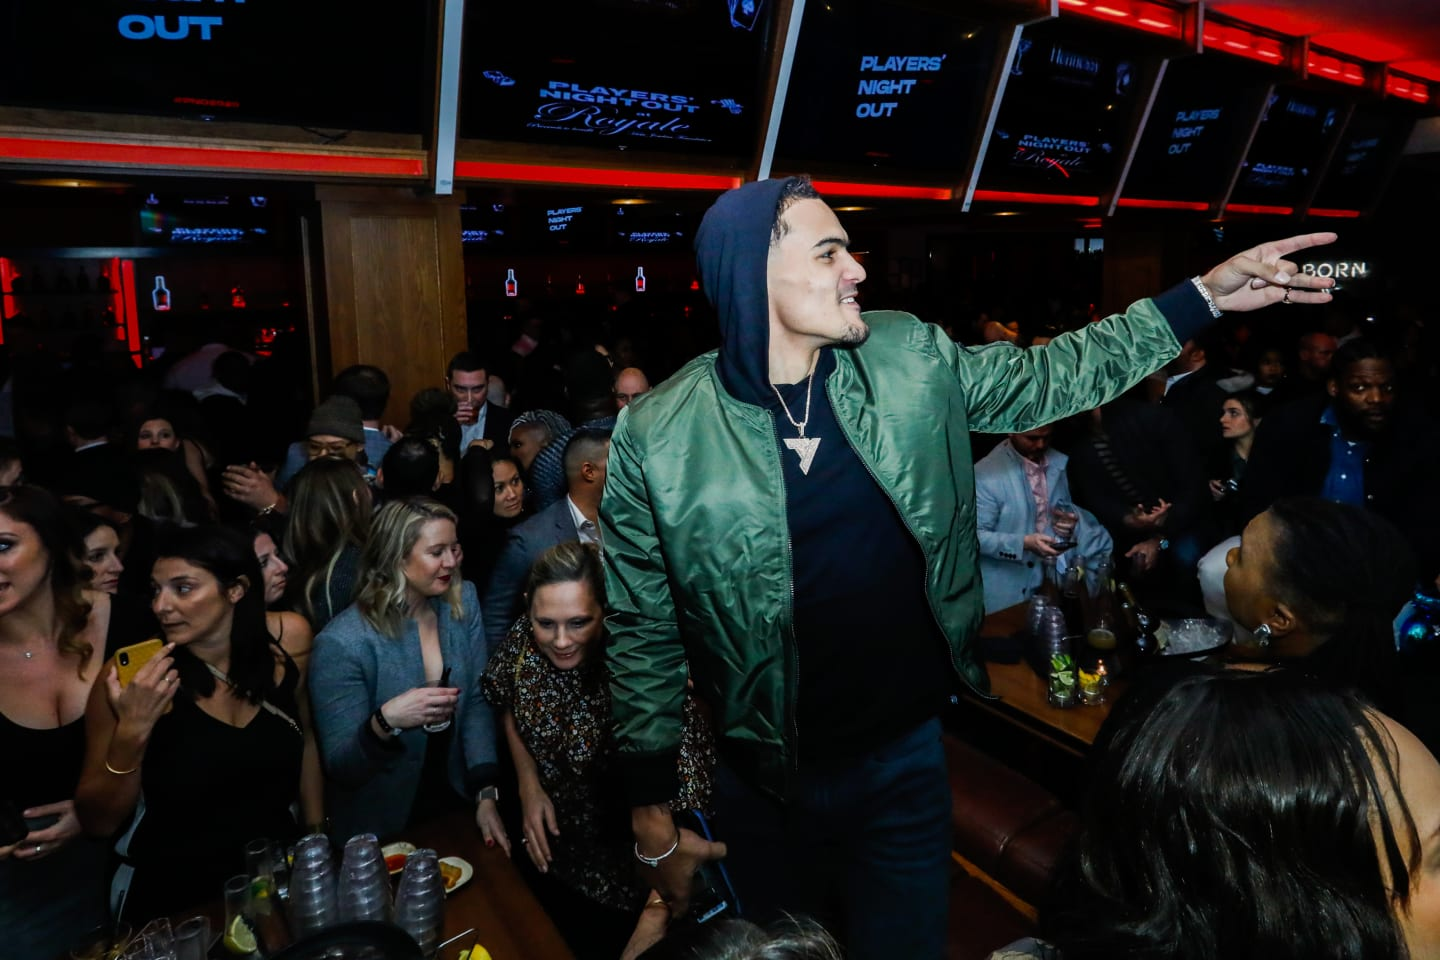 Photos: Players' Night Out